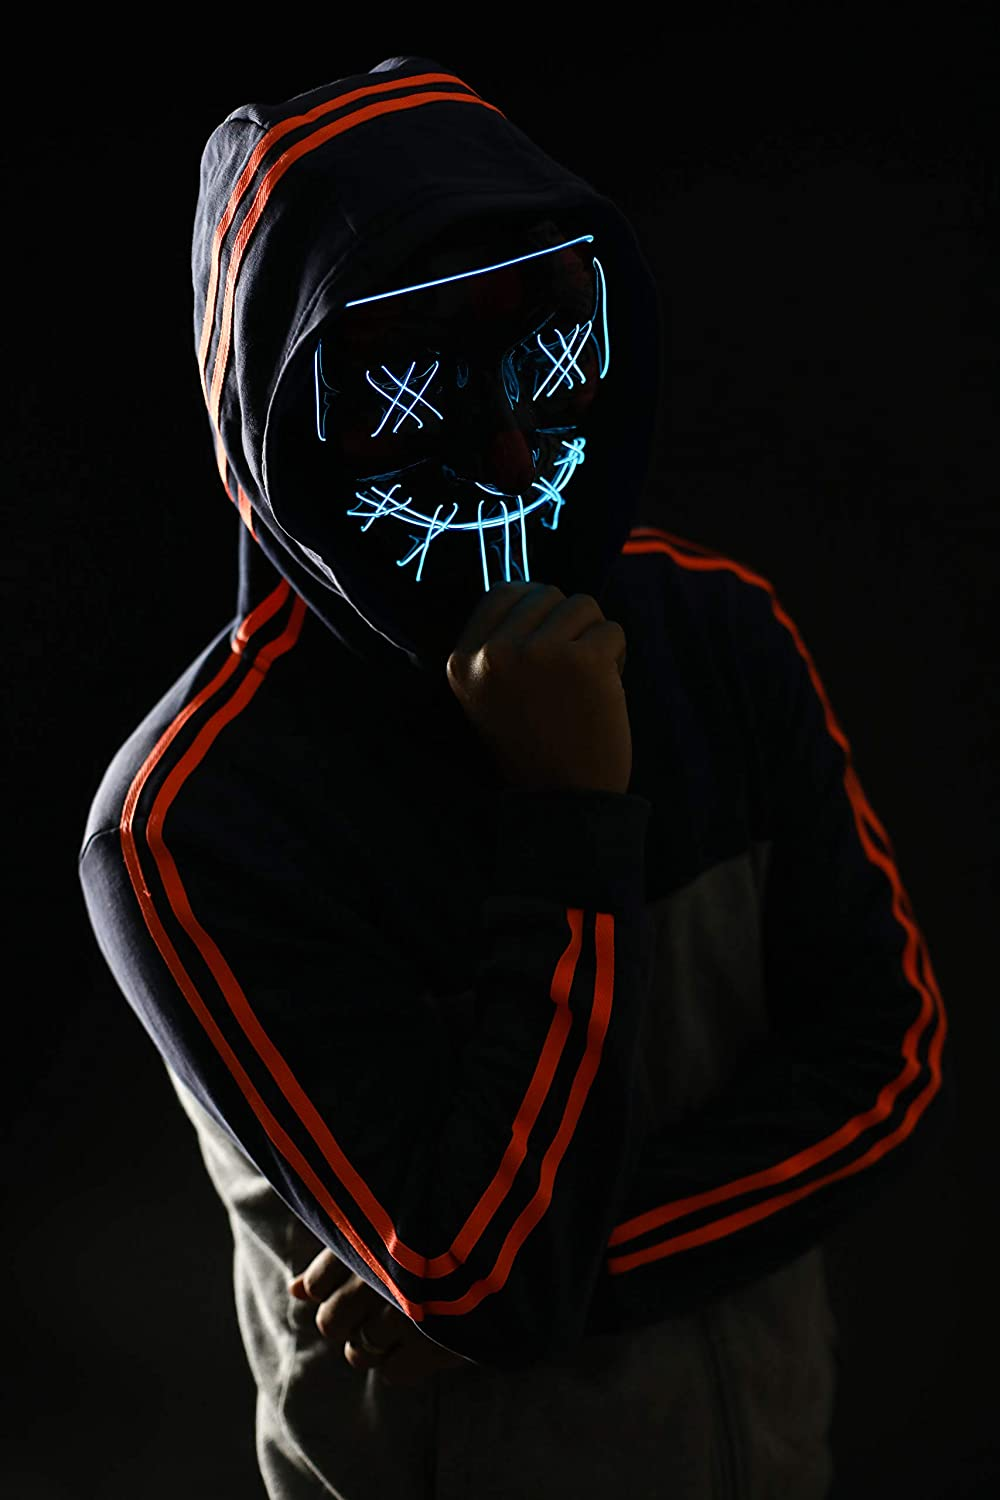 Light Up Mask Scary Mask for Halloween Festival Party Sound Induction Flash with Music Speed